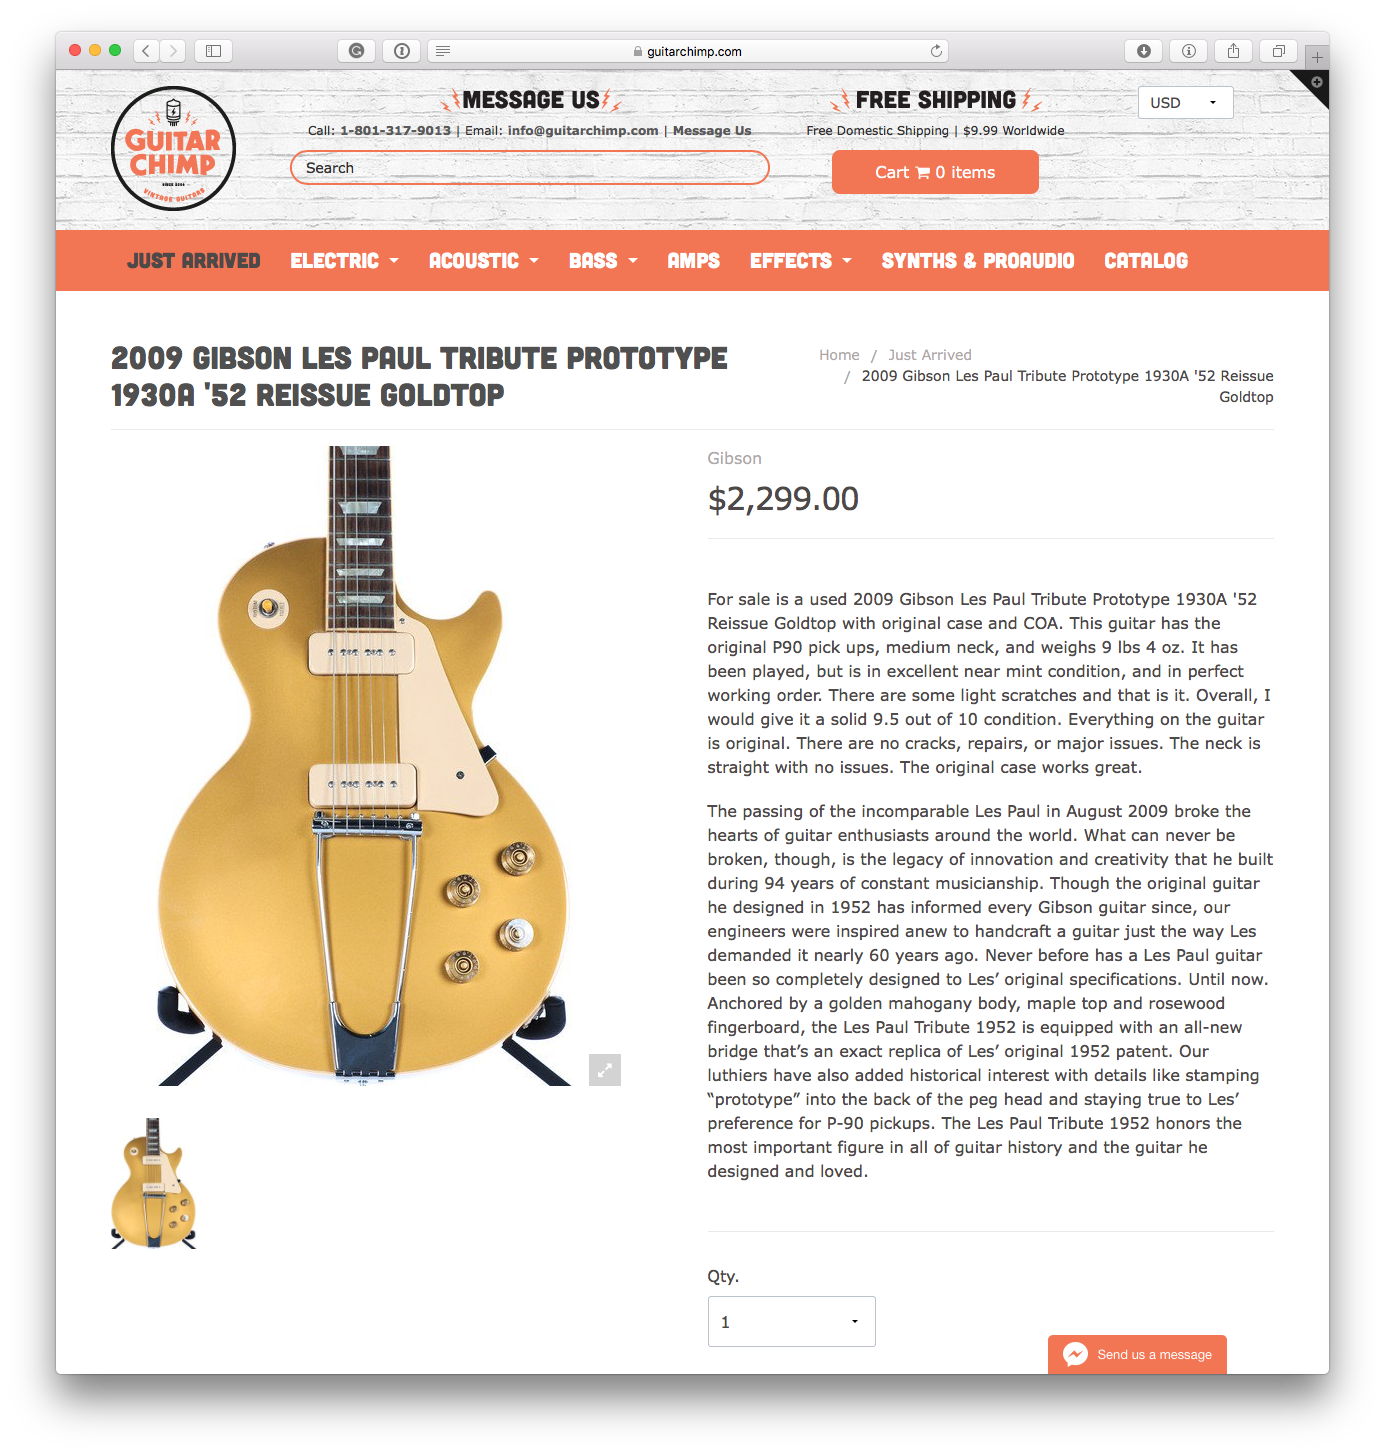 Guitar Chimp Product Page